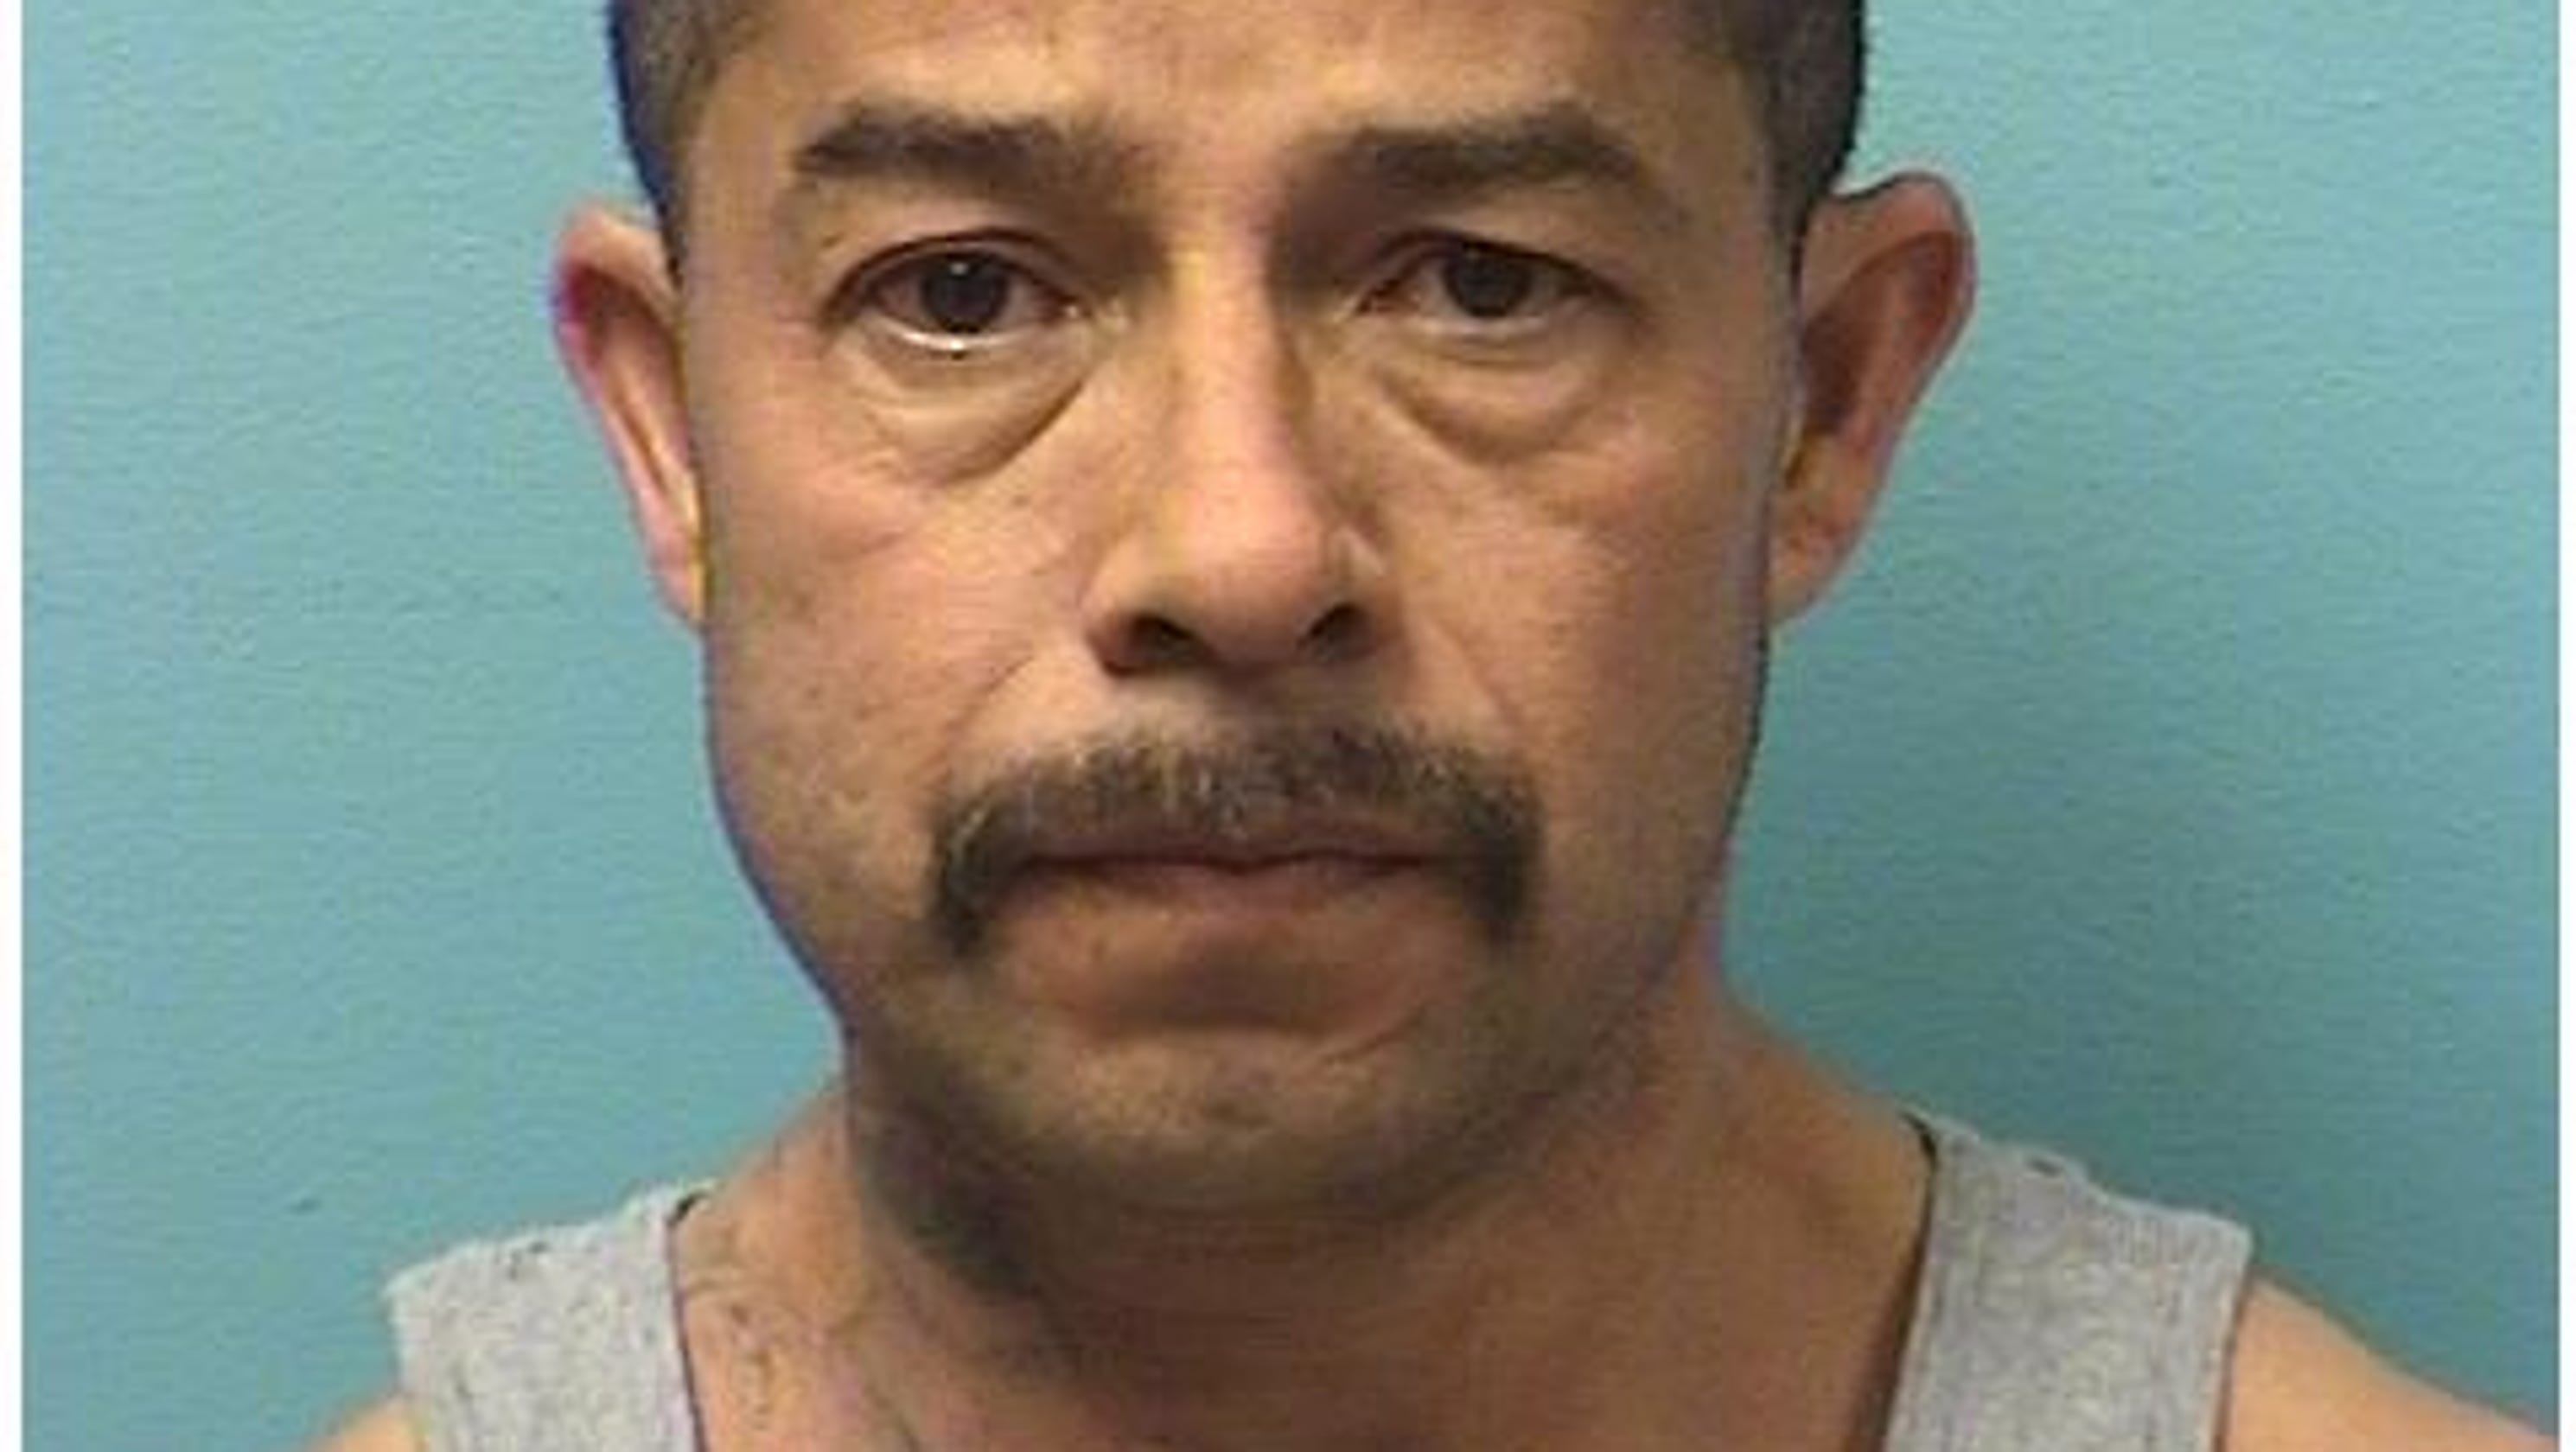 St  Cloud man suspected of shoplifting 3 times at Sartell Walmart